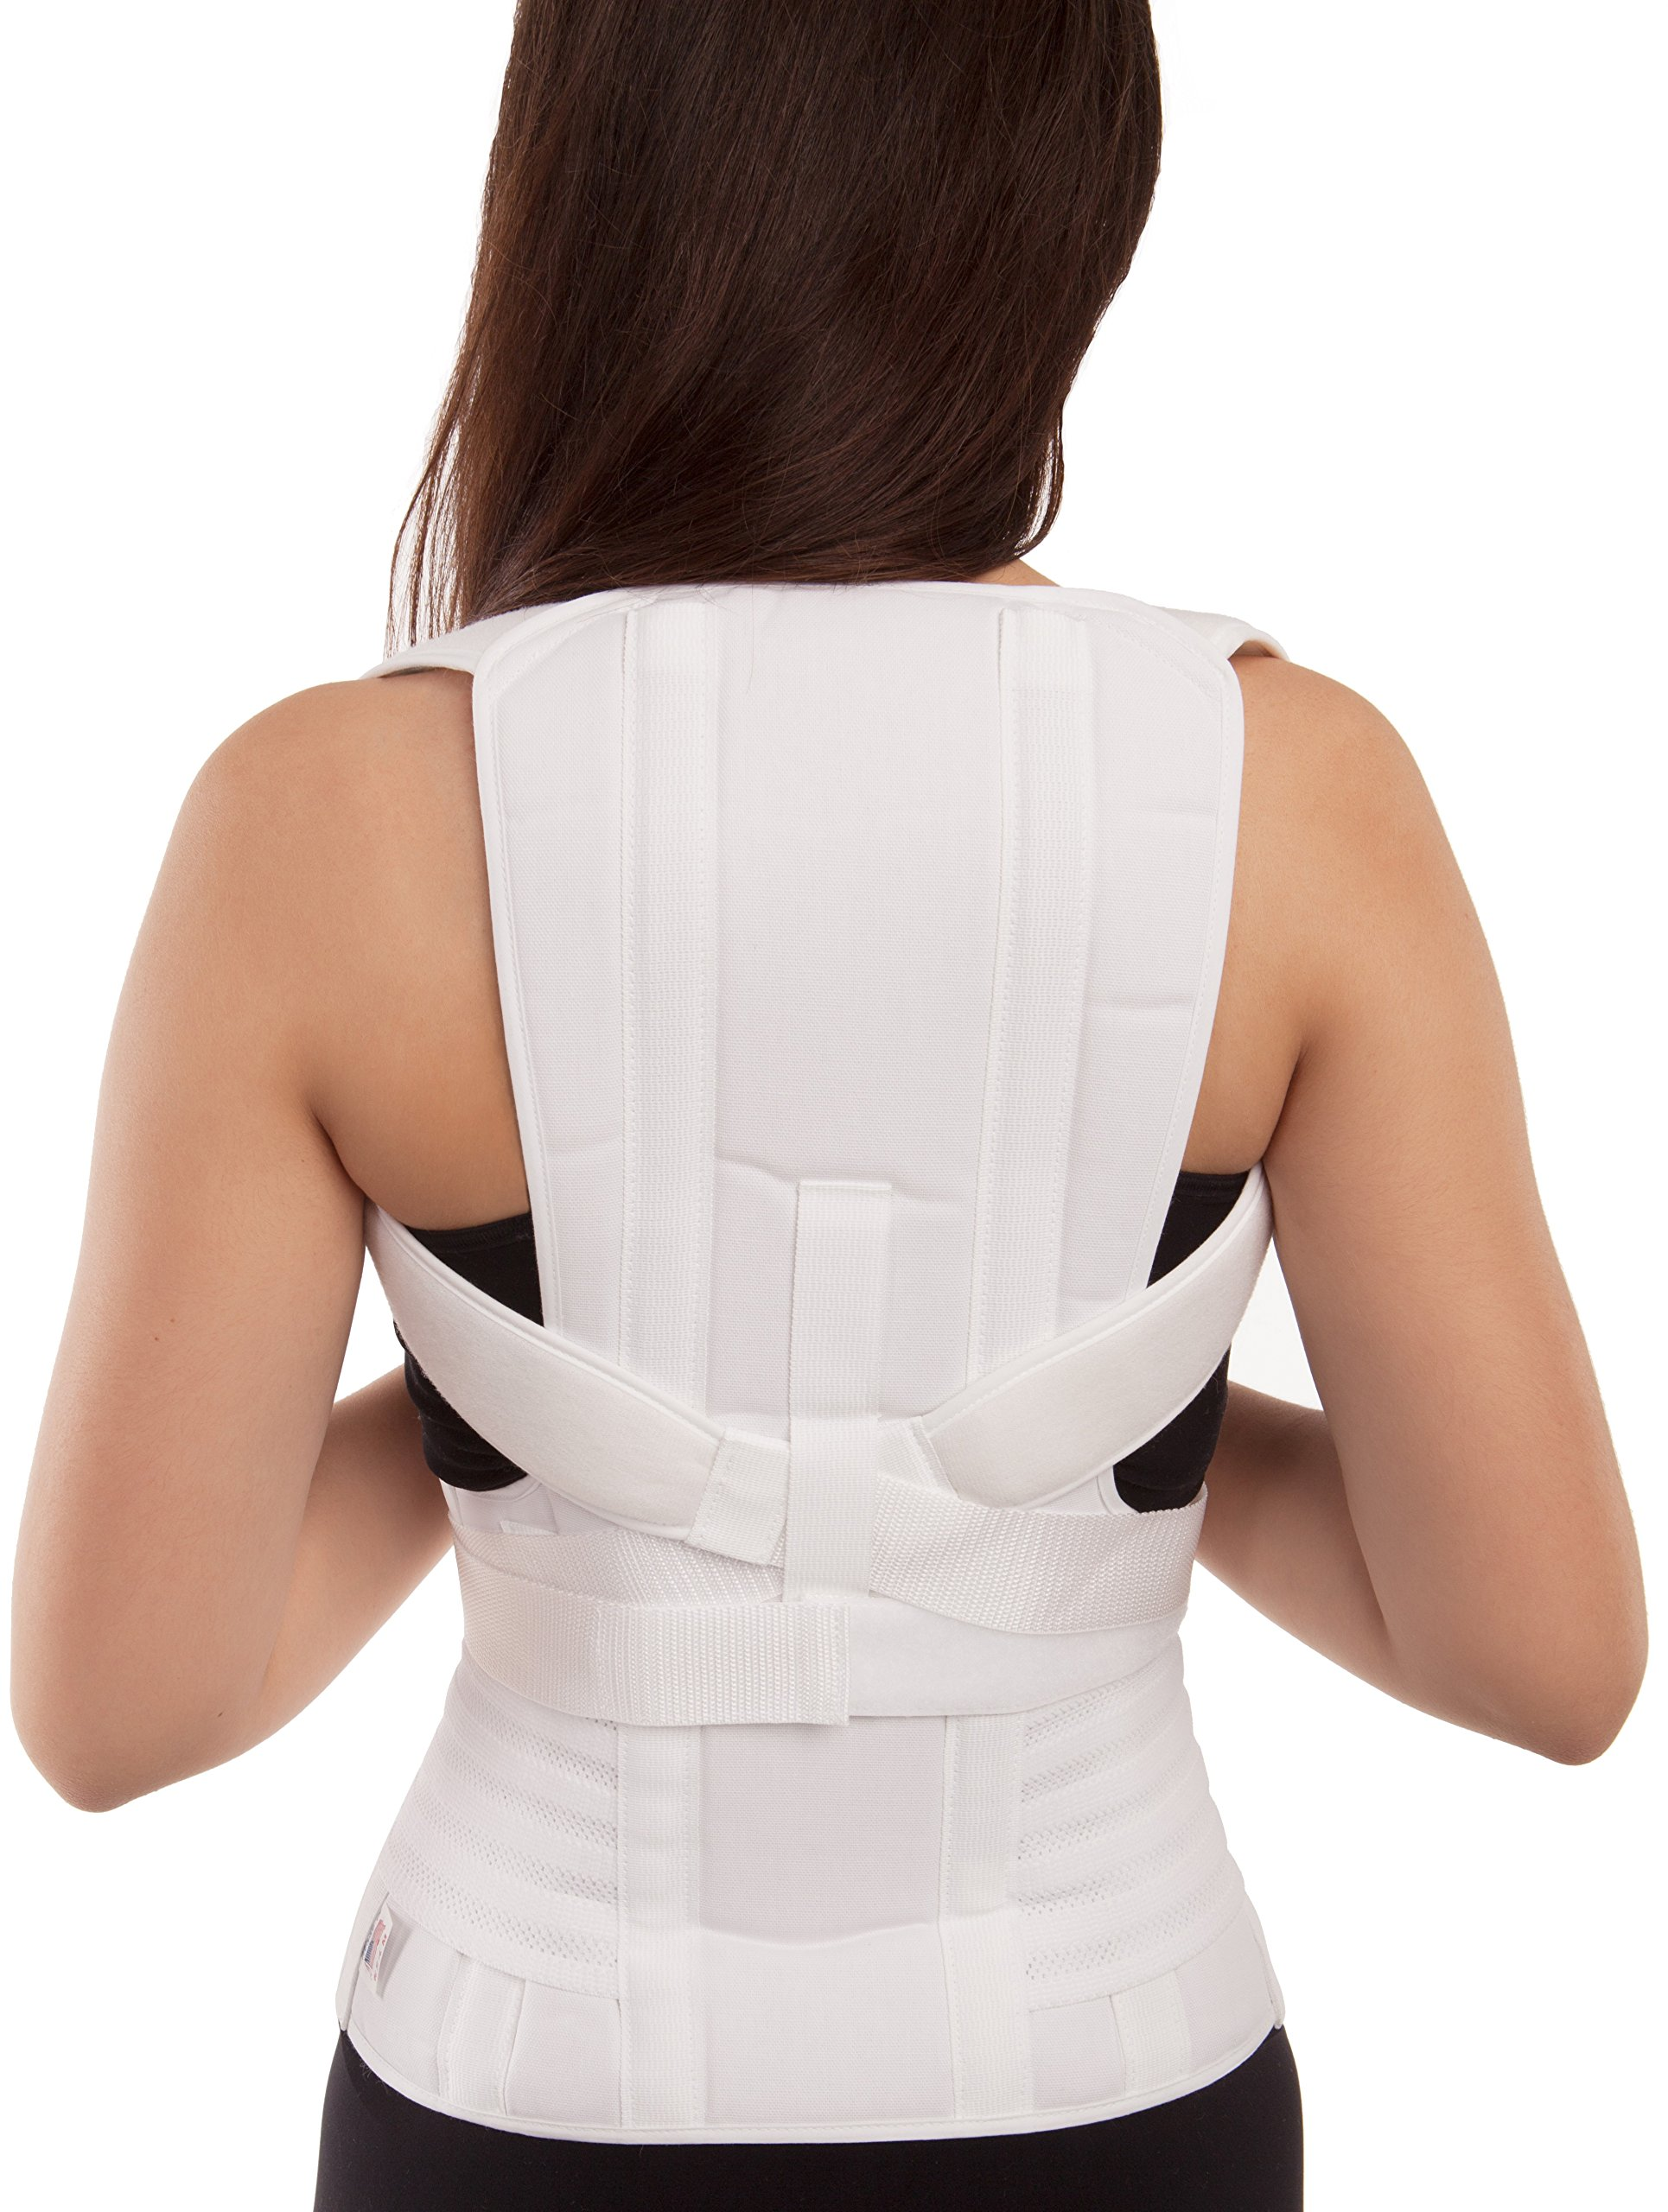 GABRIALLA Mid and Lower Back Posture Corrector for Women TLSO-250: Small